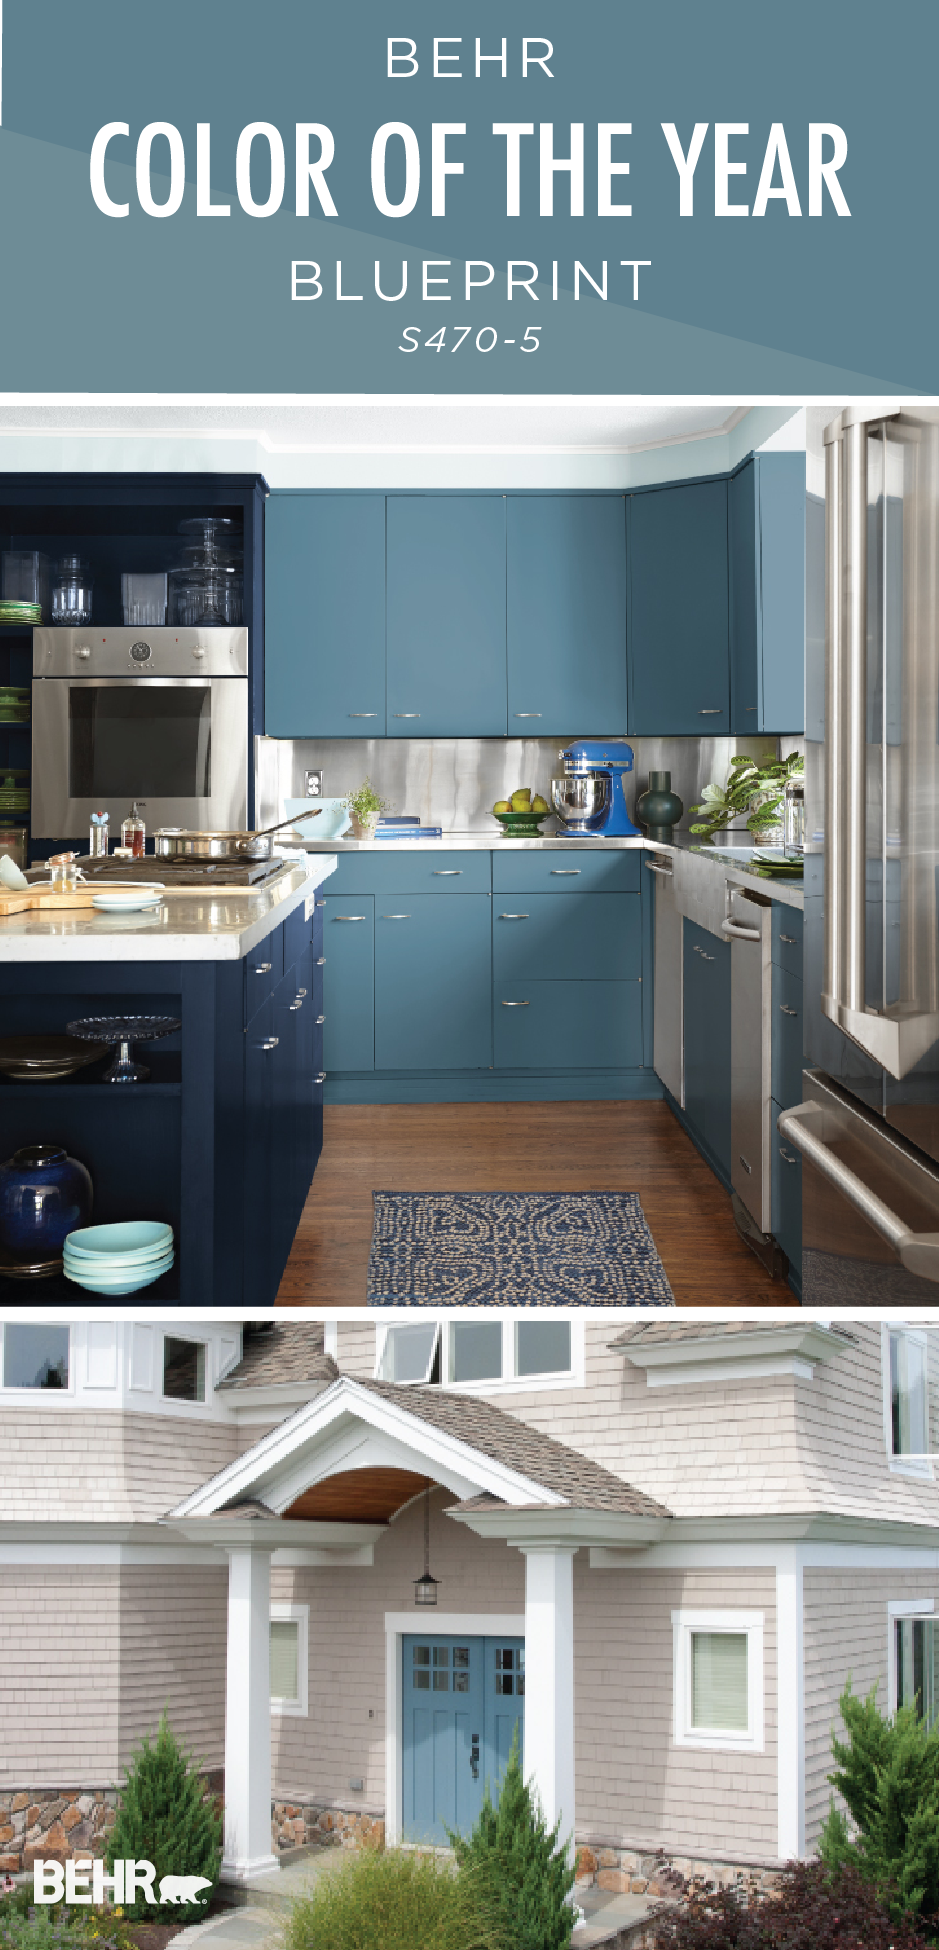 Color of the year blueprint behr 2019 color trends - Behr color of the year ...